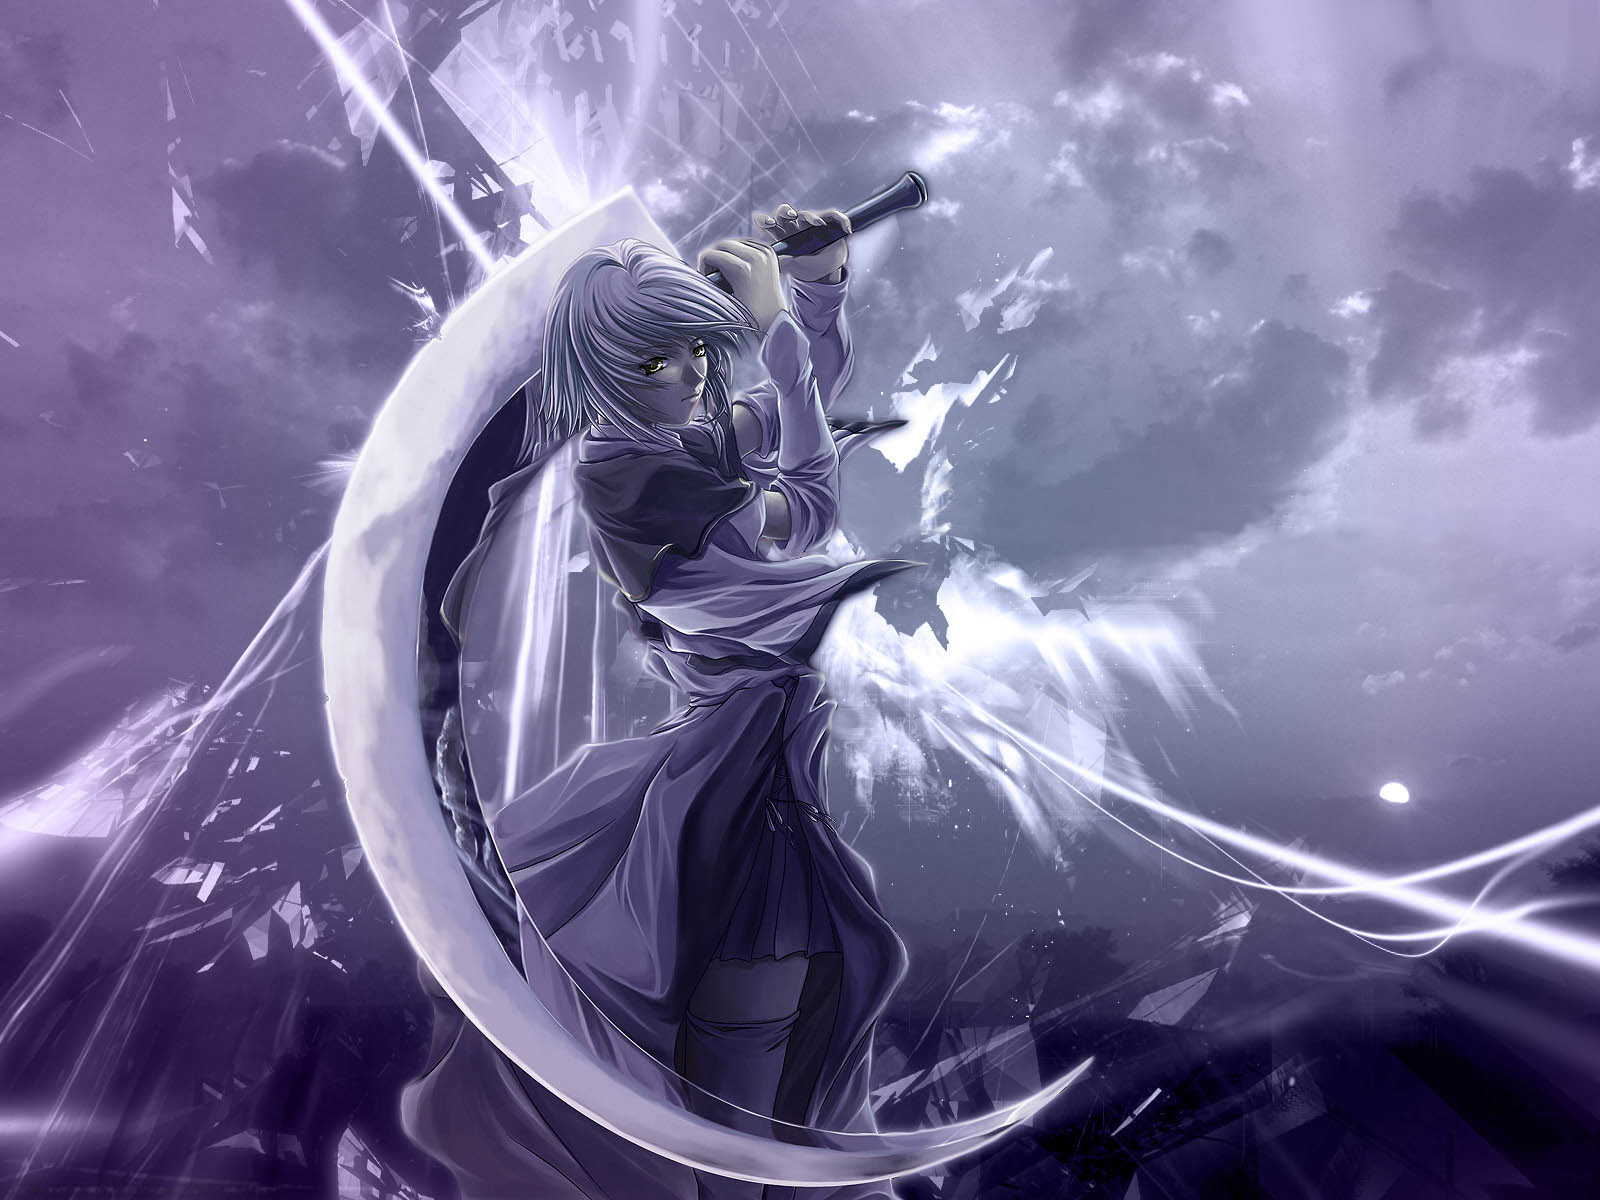 Cool Anime Pics Images amp Pictures   Becuo 1600x1200